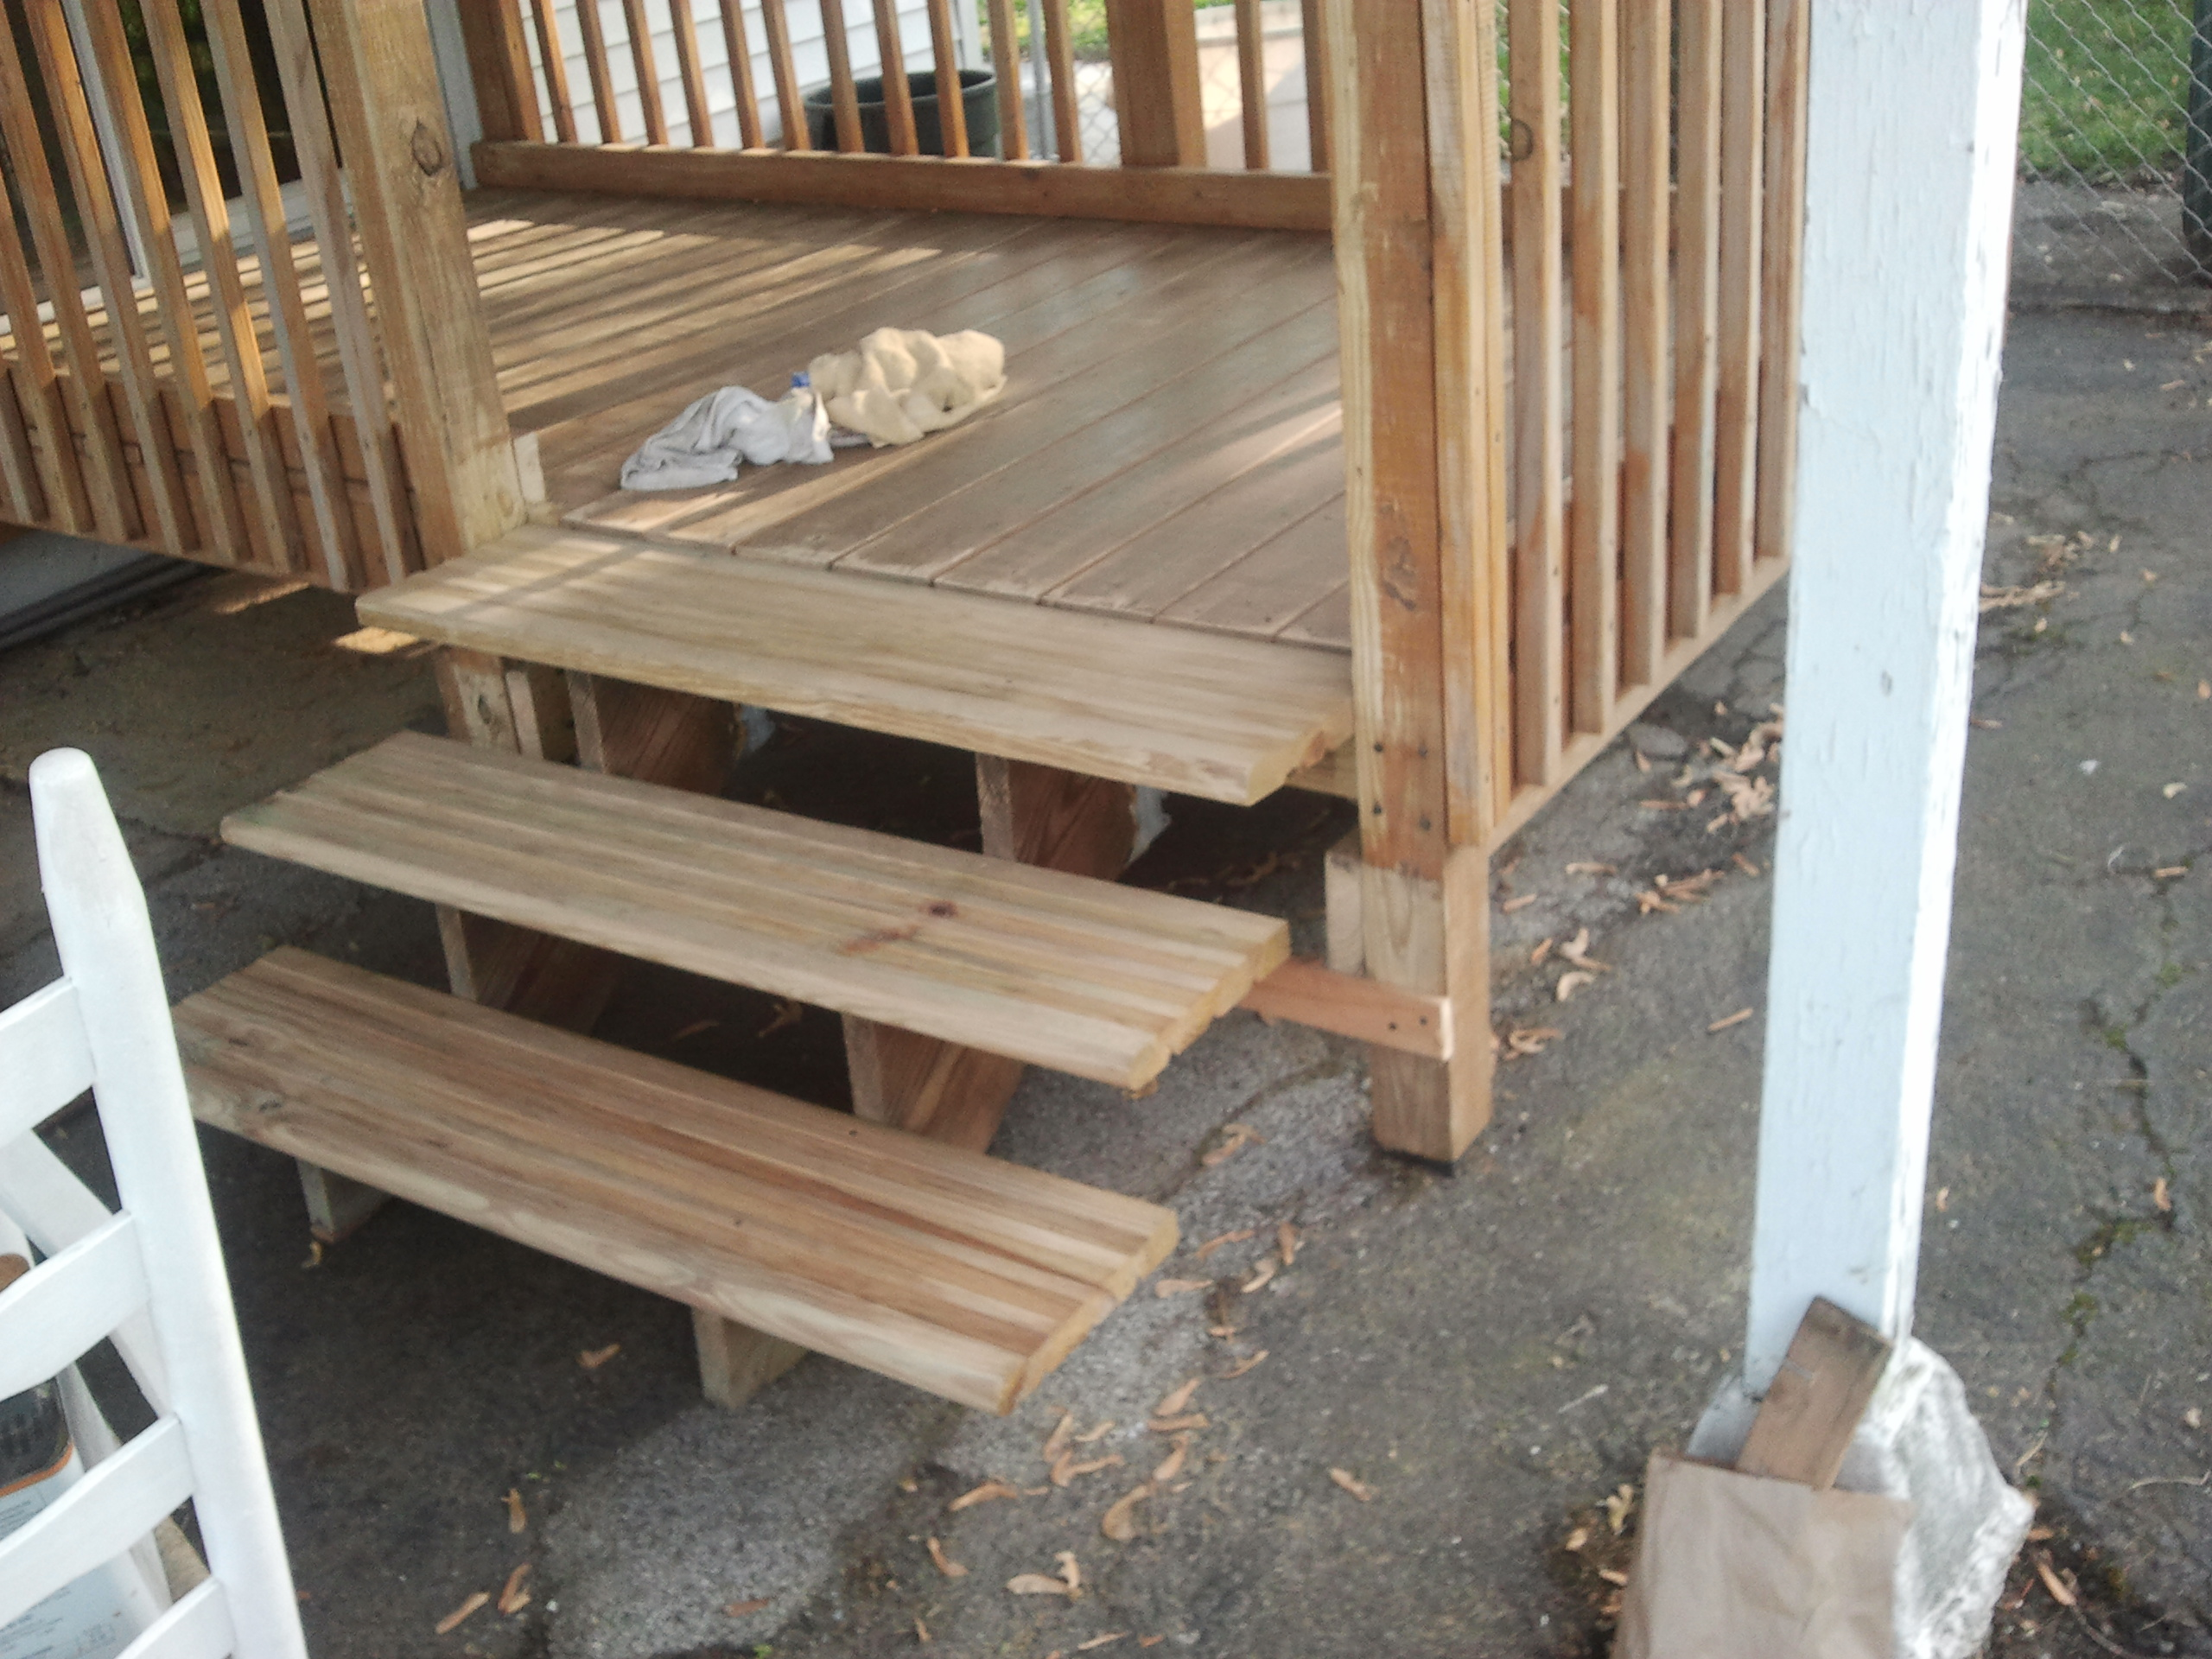 Deck staining modifications steps added to deck nj for Deck stairs pictures